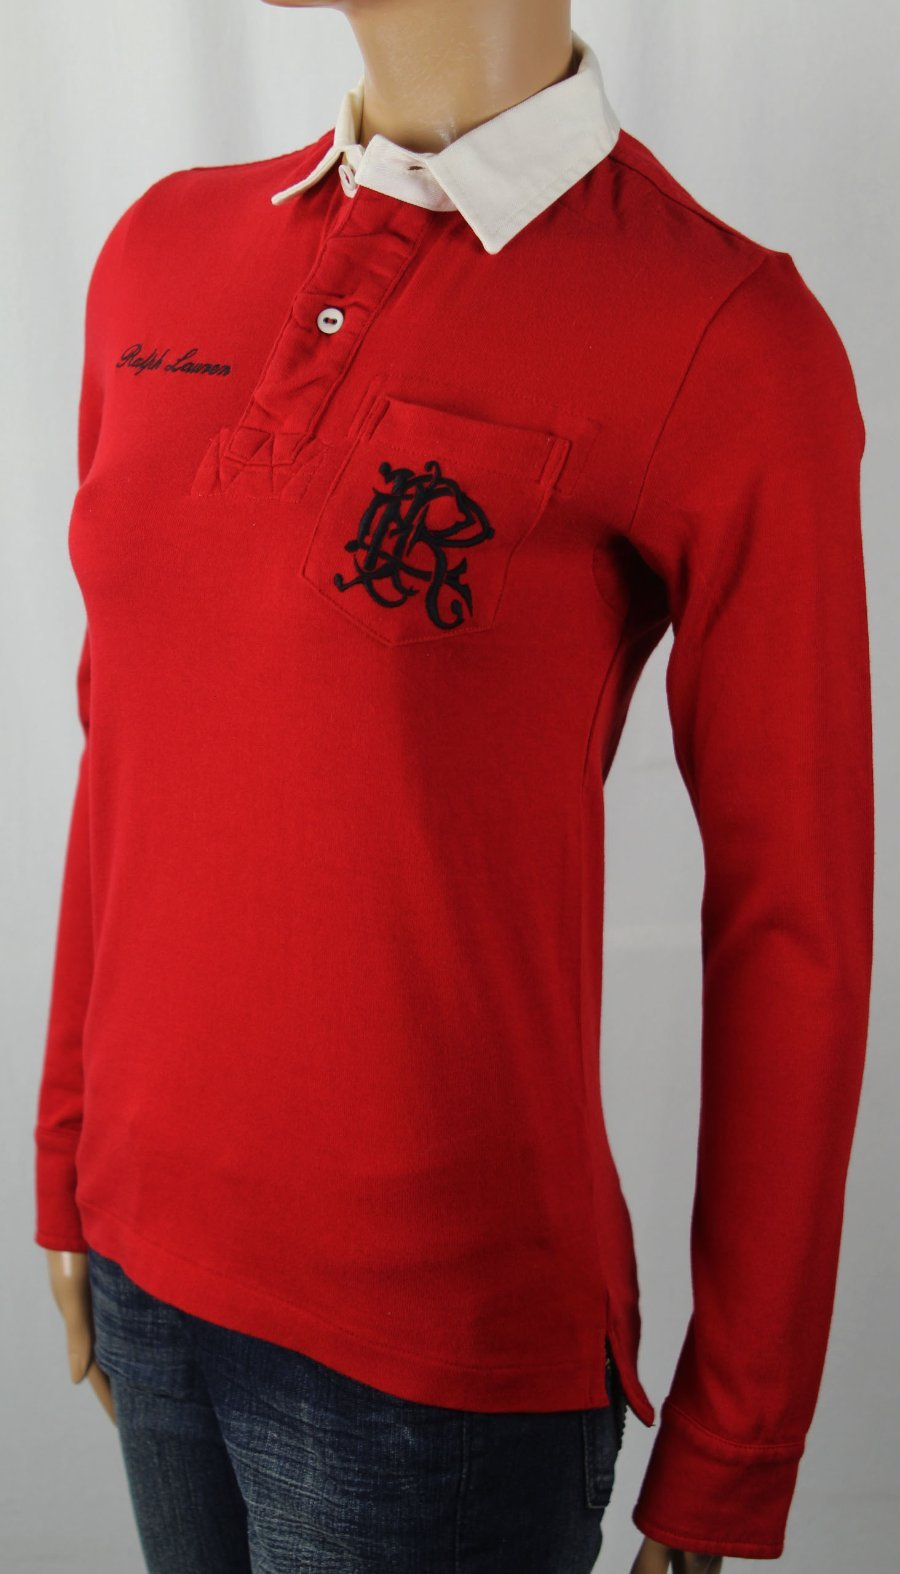 Ralph Lauren Red Long Sleeve Polo Rugby Shirt White Collar Pocket